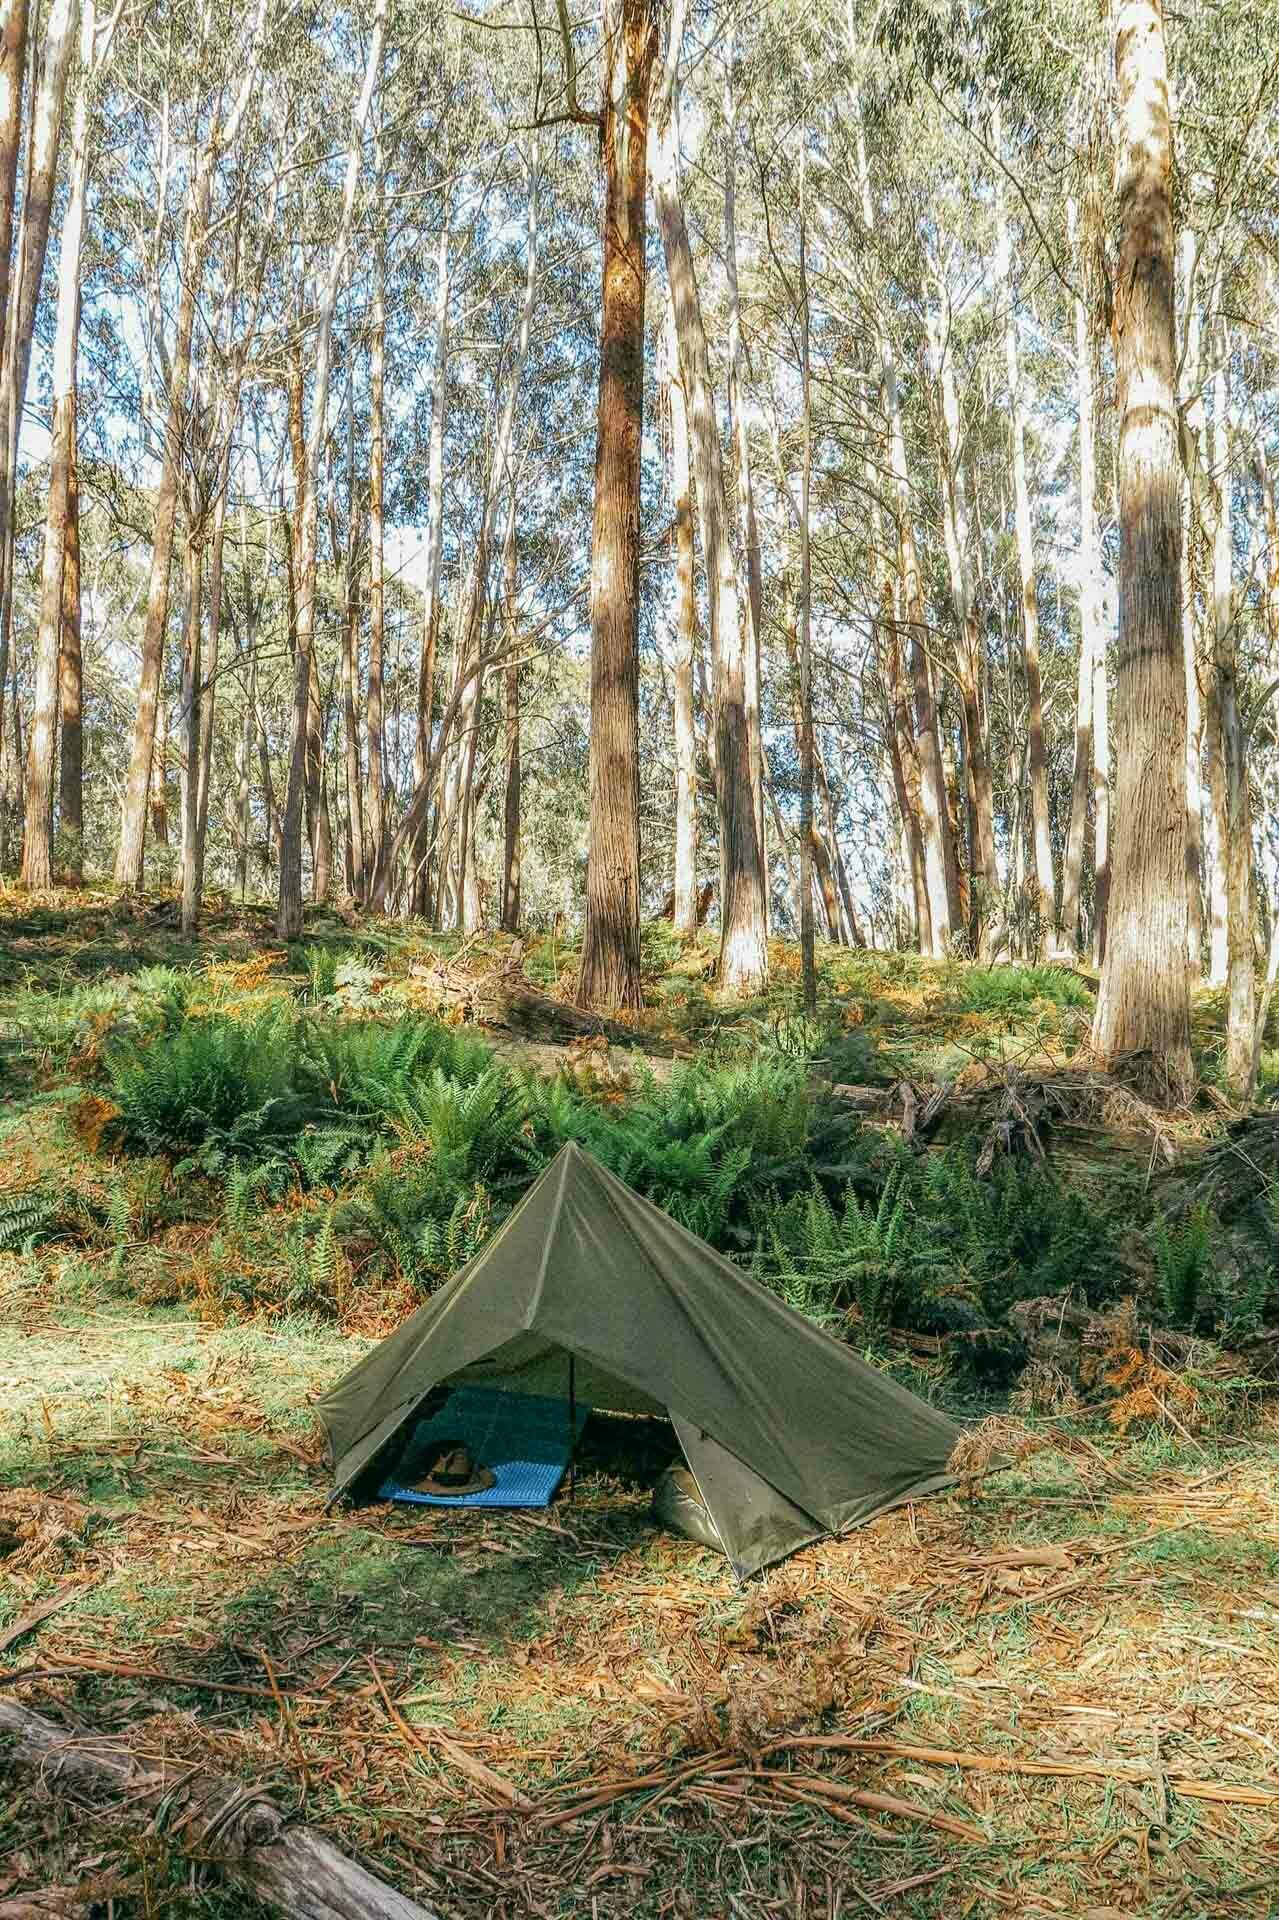 How To Camp Under a Tarp, kale munro, tarp camping, shelter, lil tent